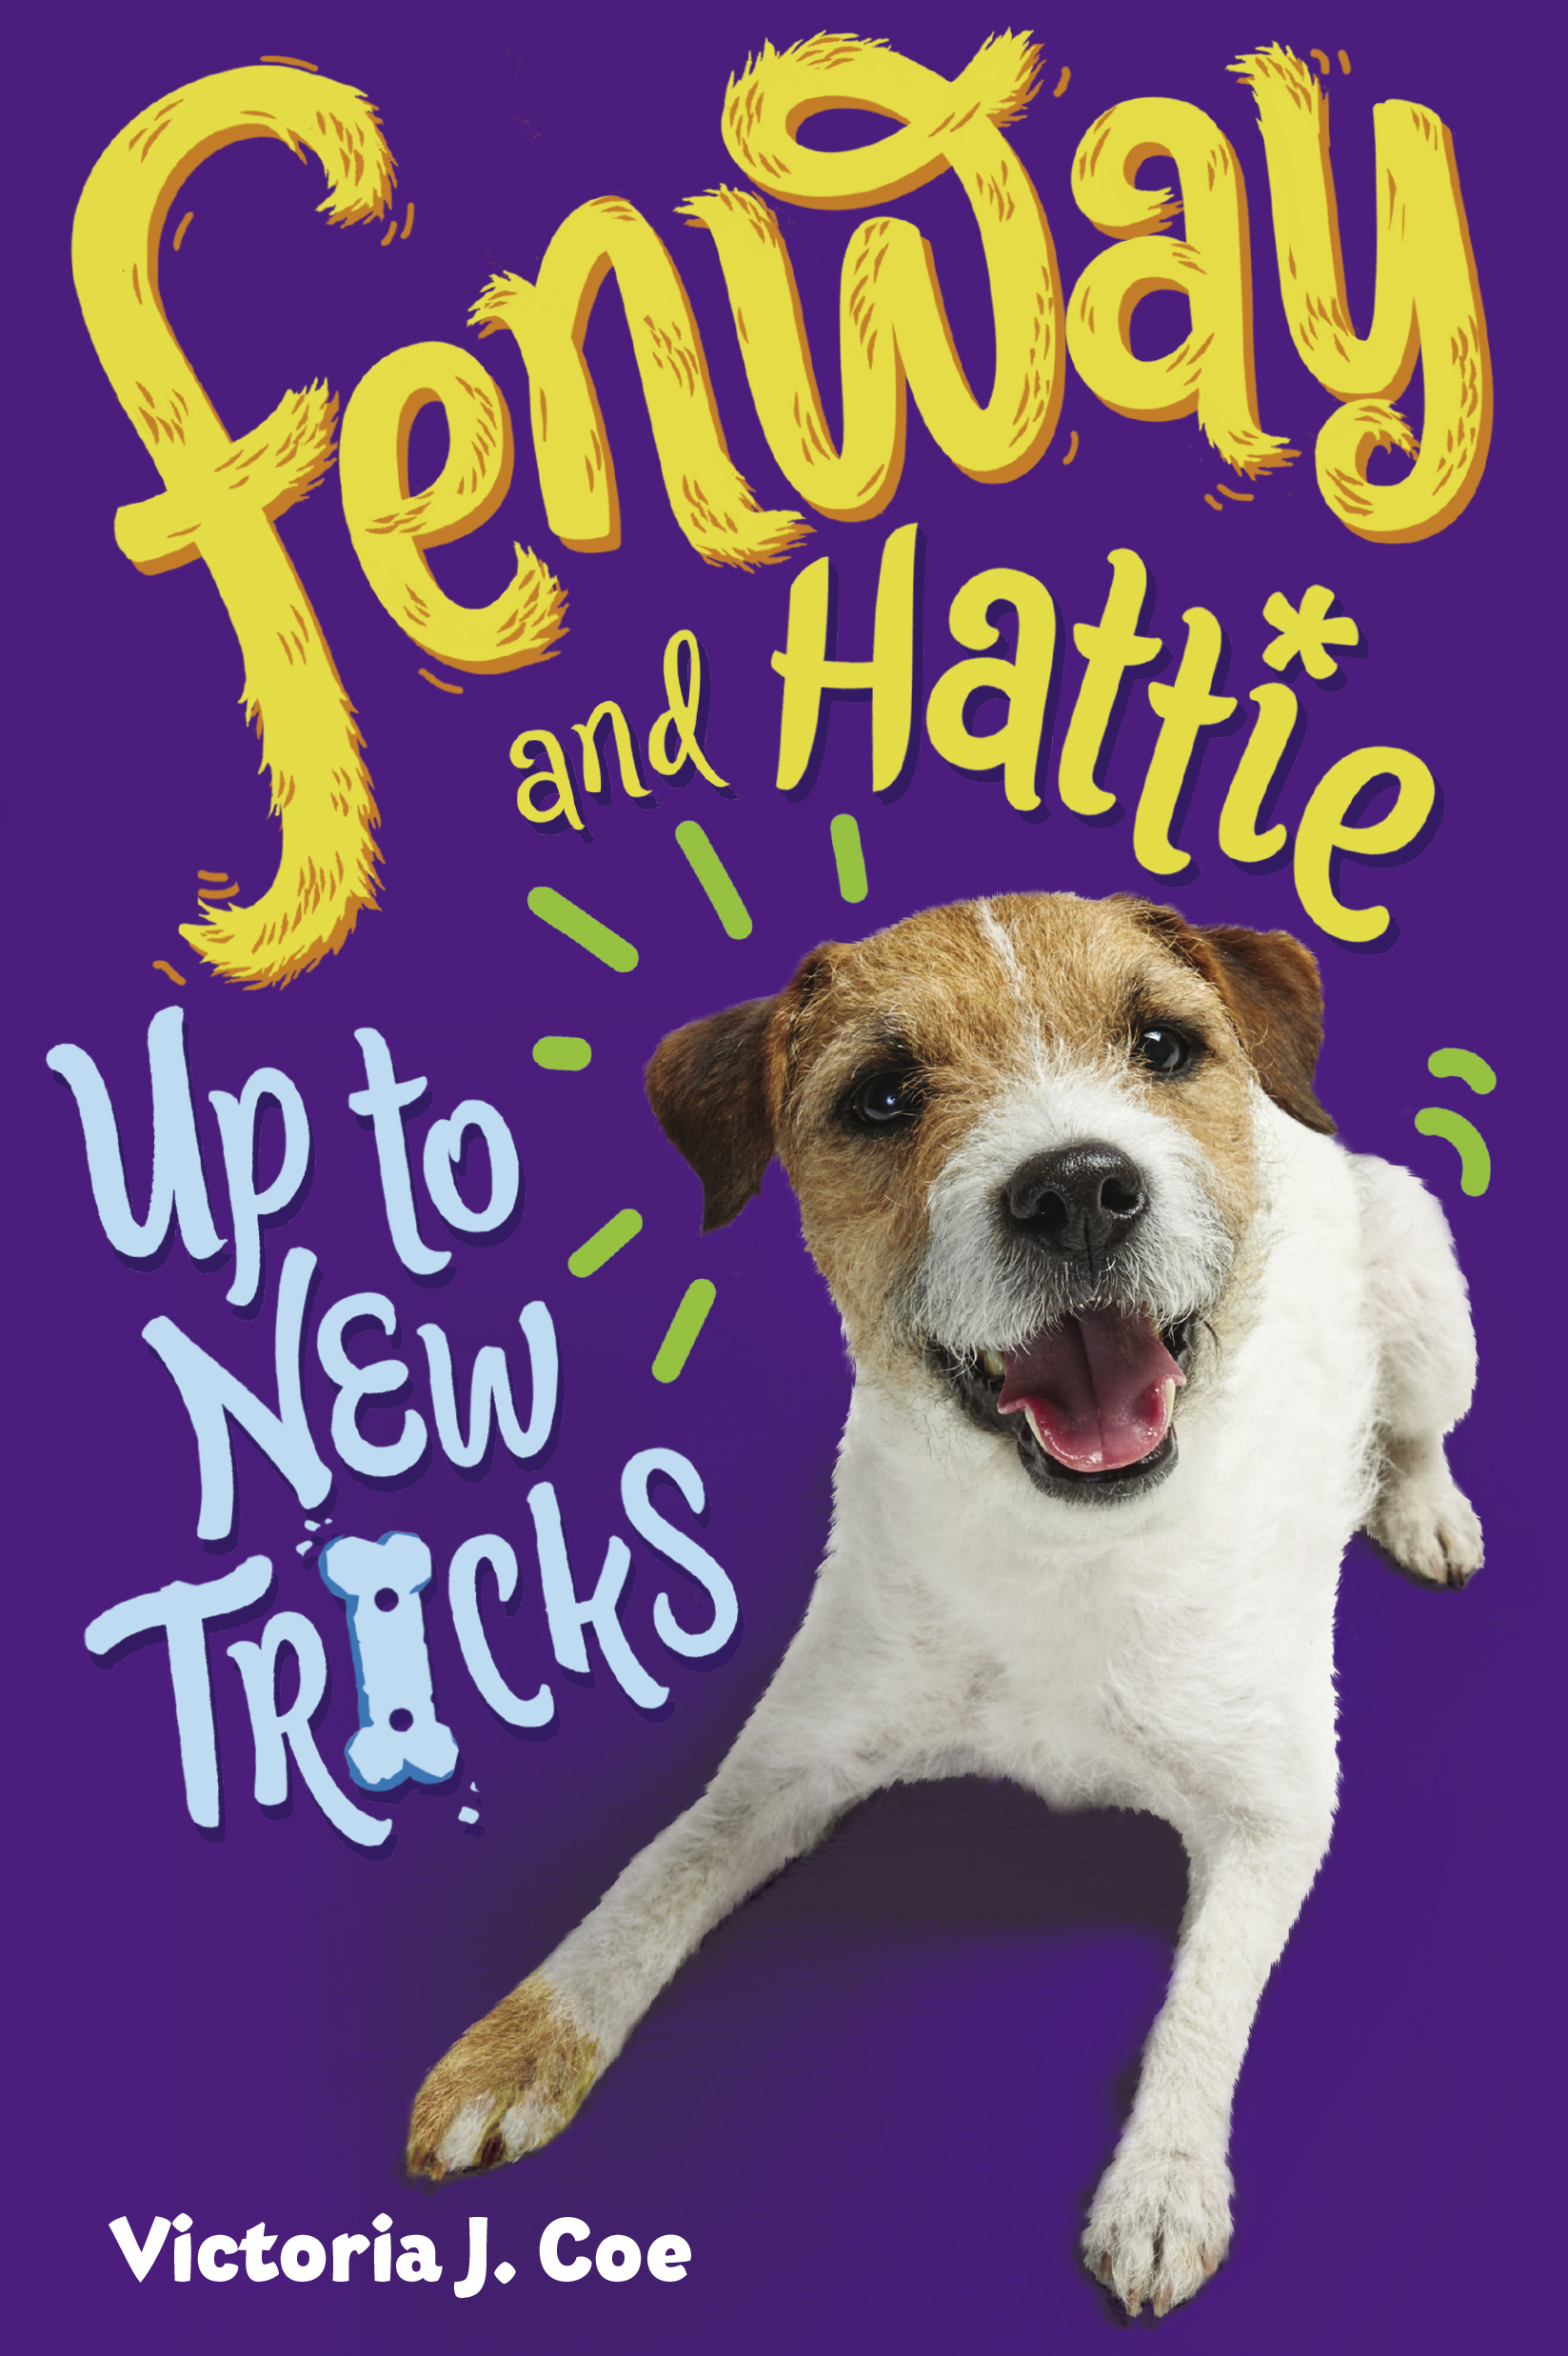 And... - Don't forget that Fenway & Hattie's THIRD adventure is coming on Jan. 2nd! Get the scoop & find out how to pre-order by clicking HERE.